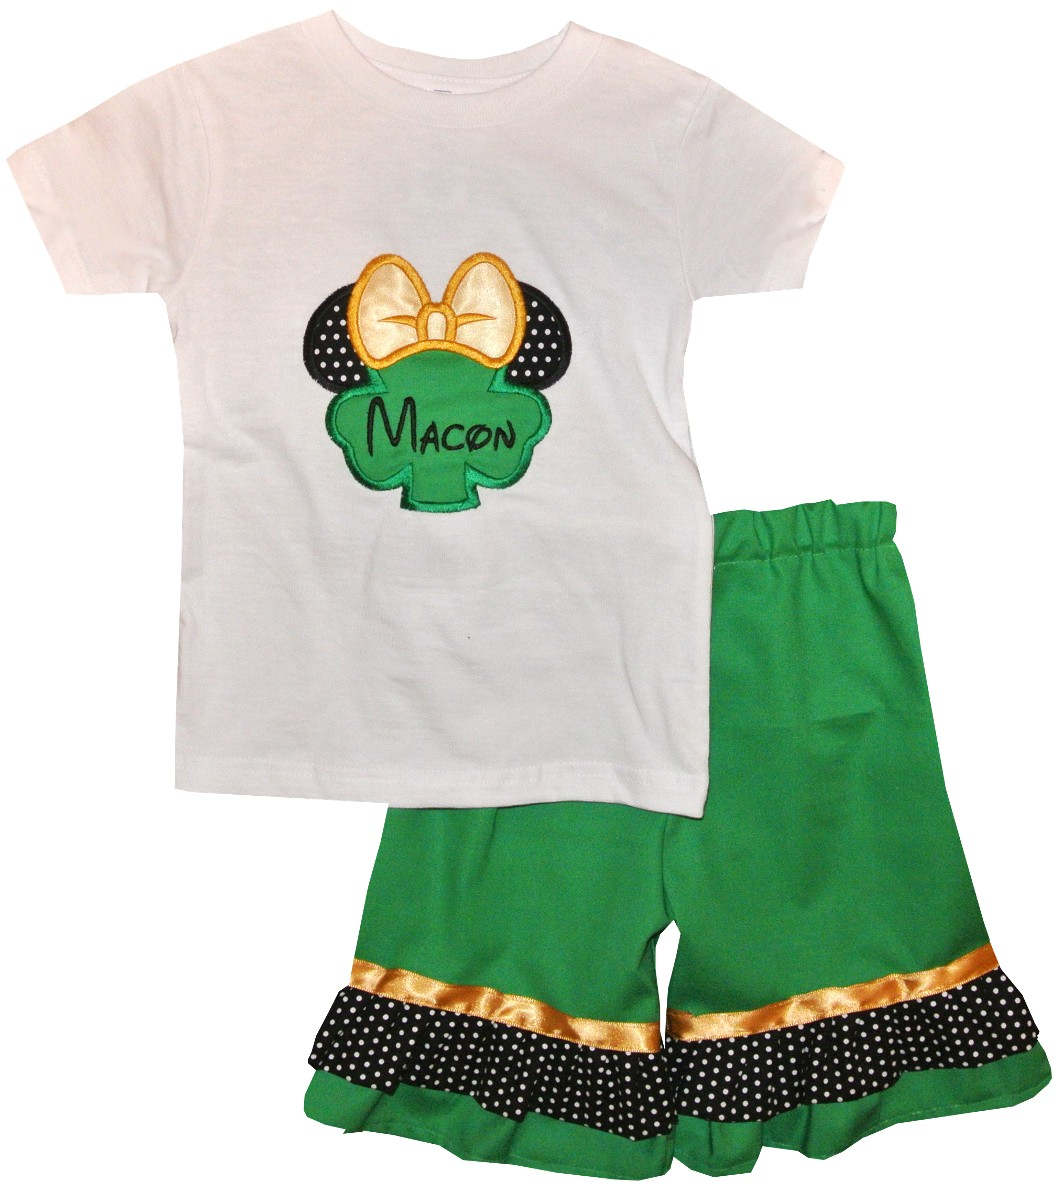 d82415150 Disney Minnie Mouse St Patrick's Day Shamrock Shirt or Shorts or Capris  Outfit for Girls